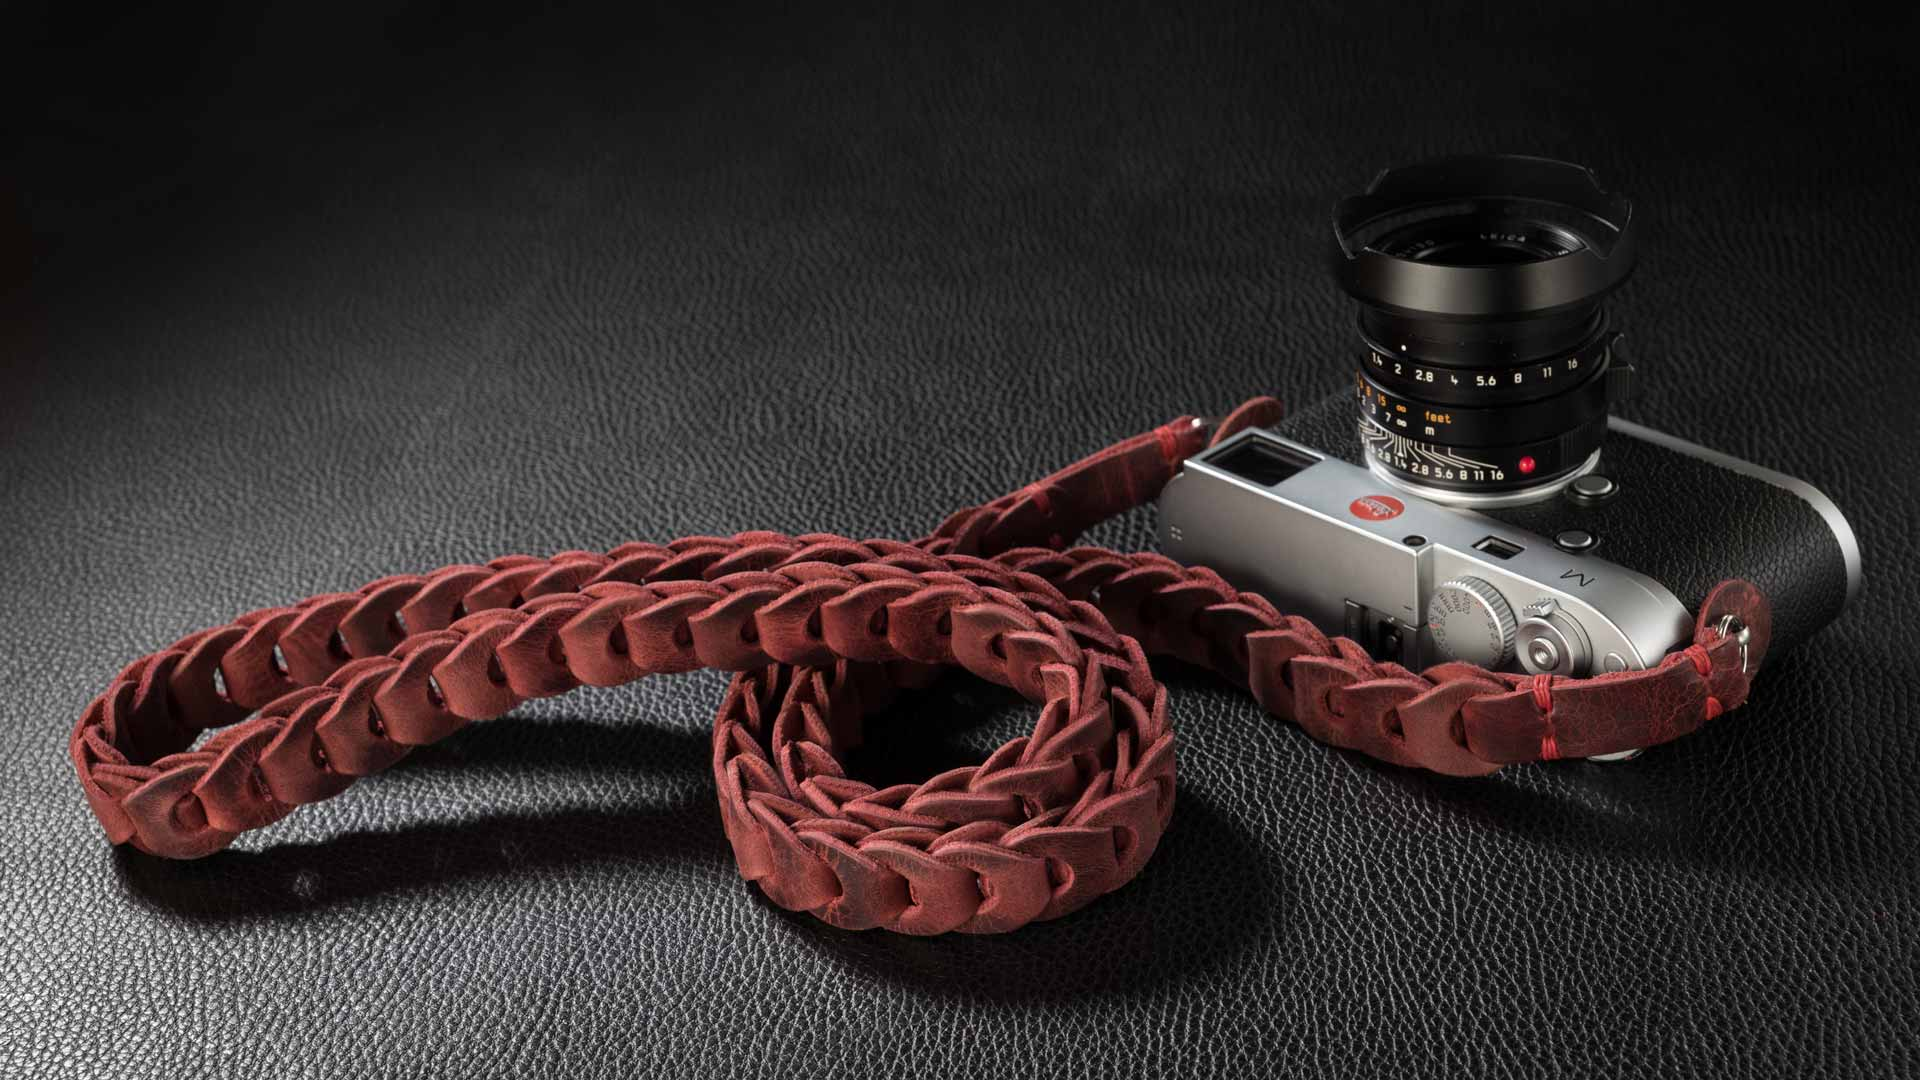 leica m strap, leather camera strap, handmade leather camera strap, vintage camera straps, leica camera strap, handmade camera strap, red camera strap, mirrorless camera strap